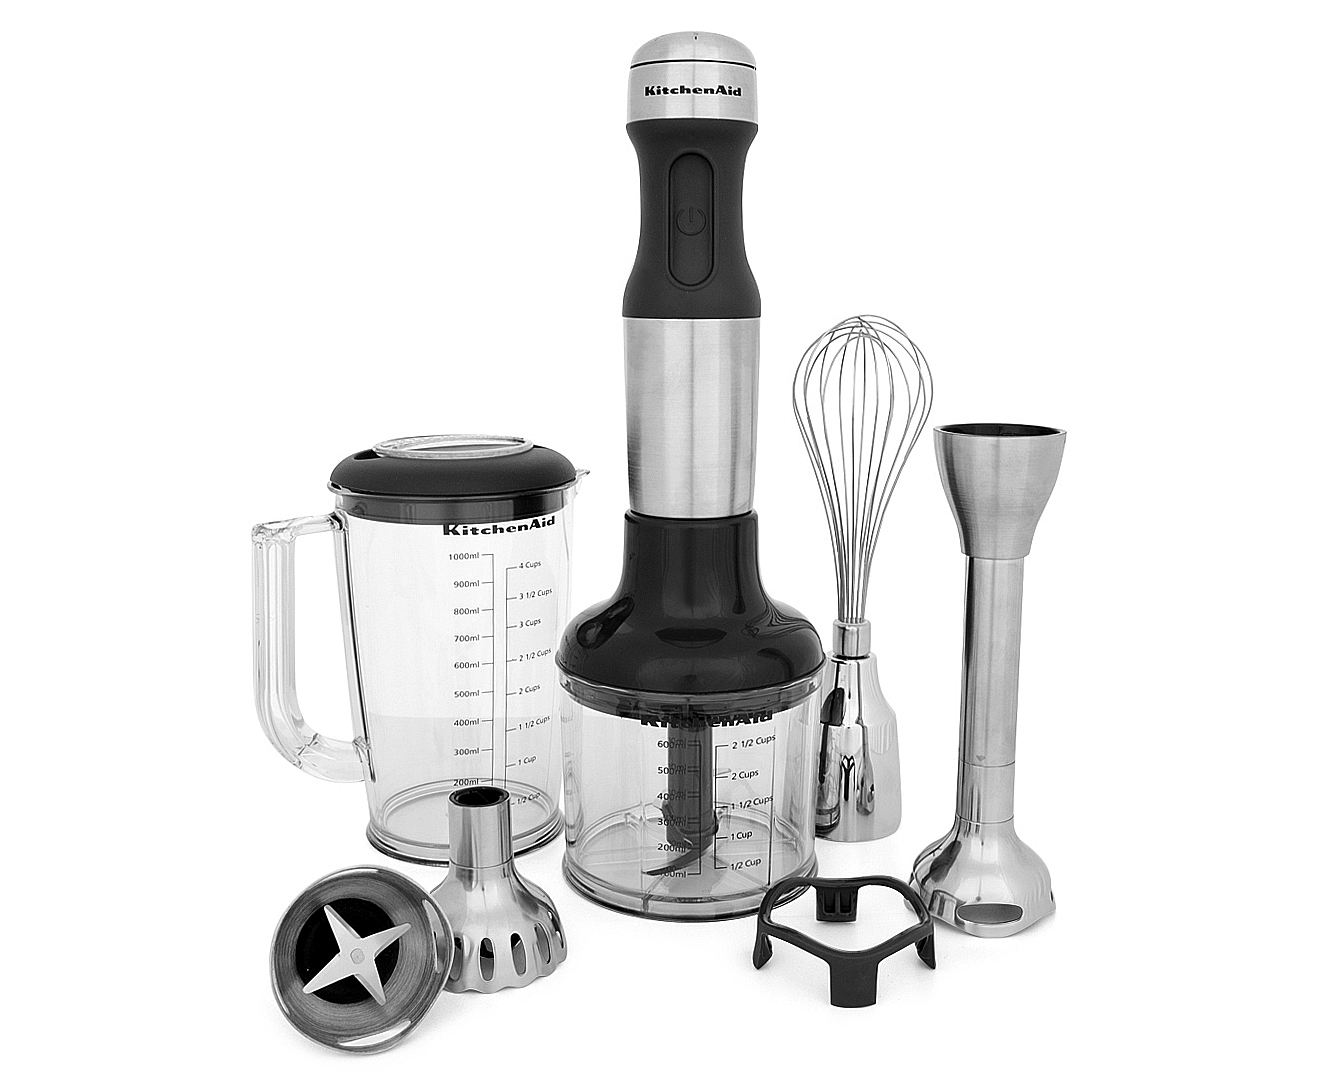 KitchenAid Artisan Deluxe Hand Blender - Stainless | Great daily ...